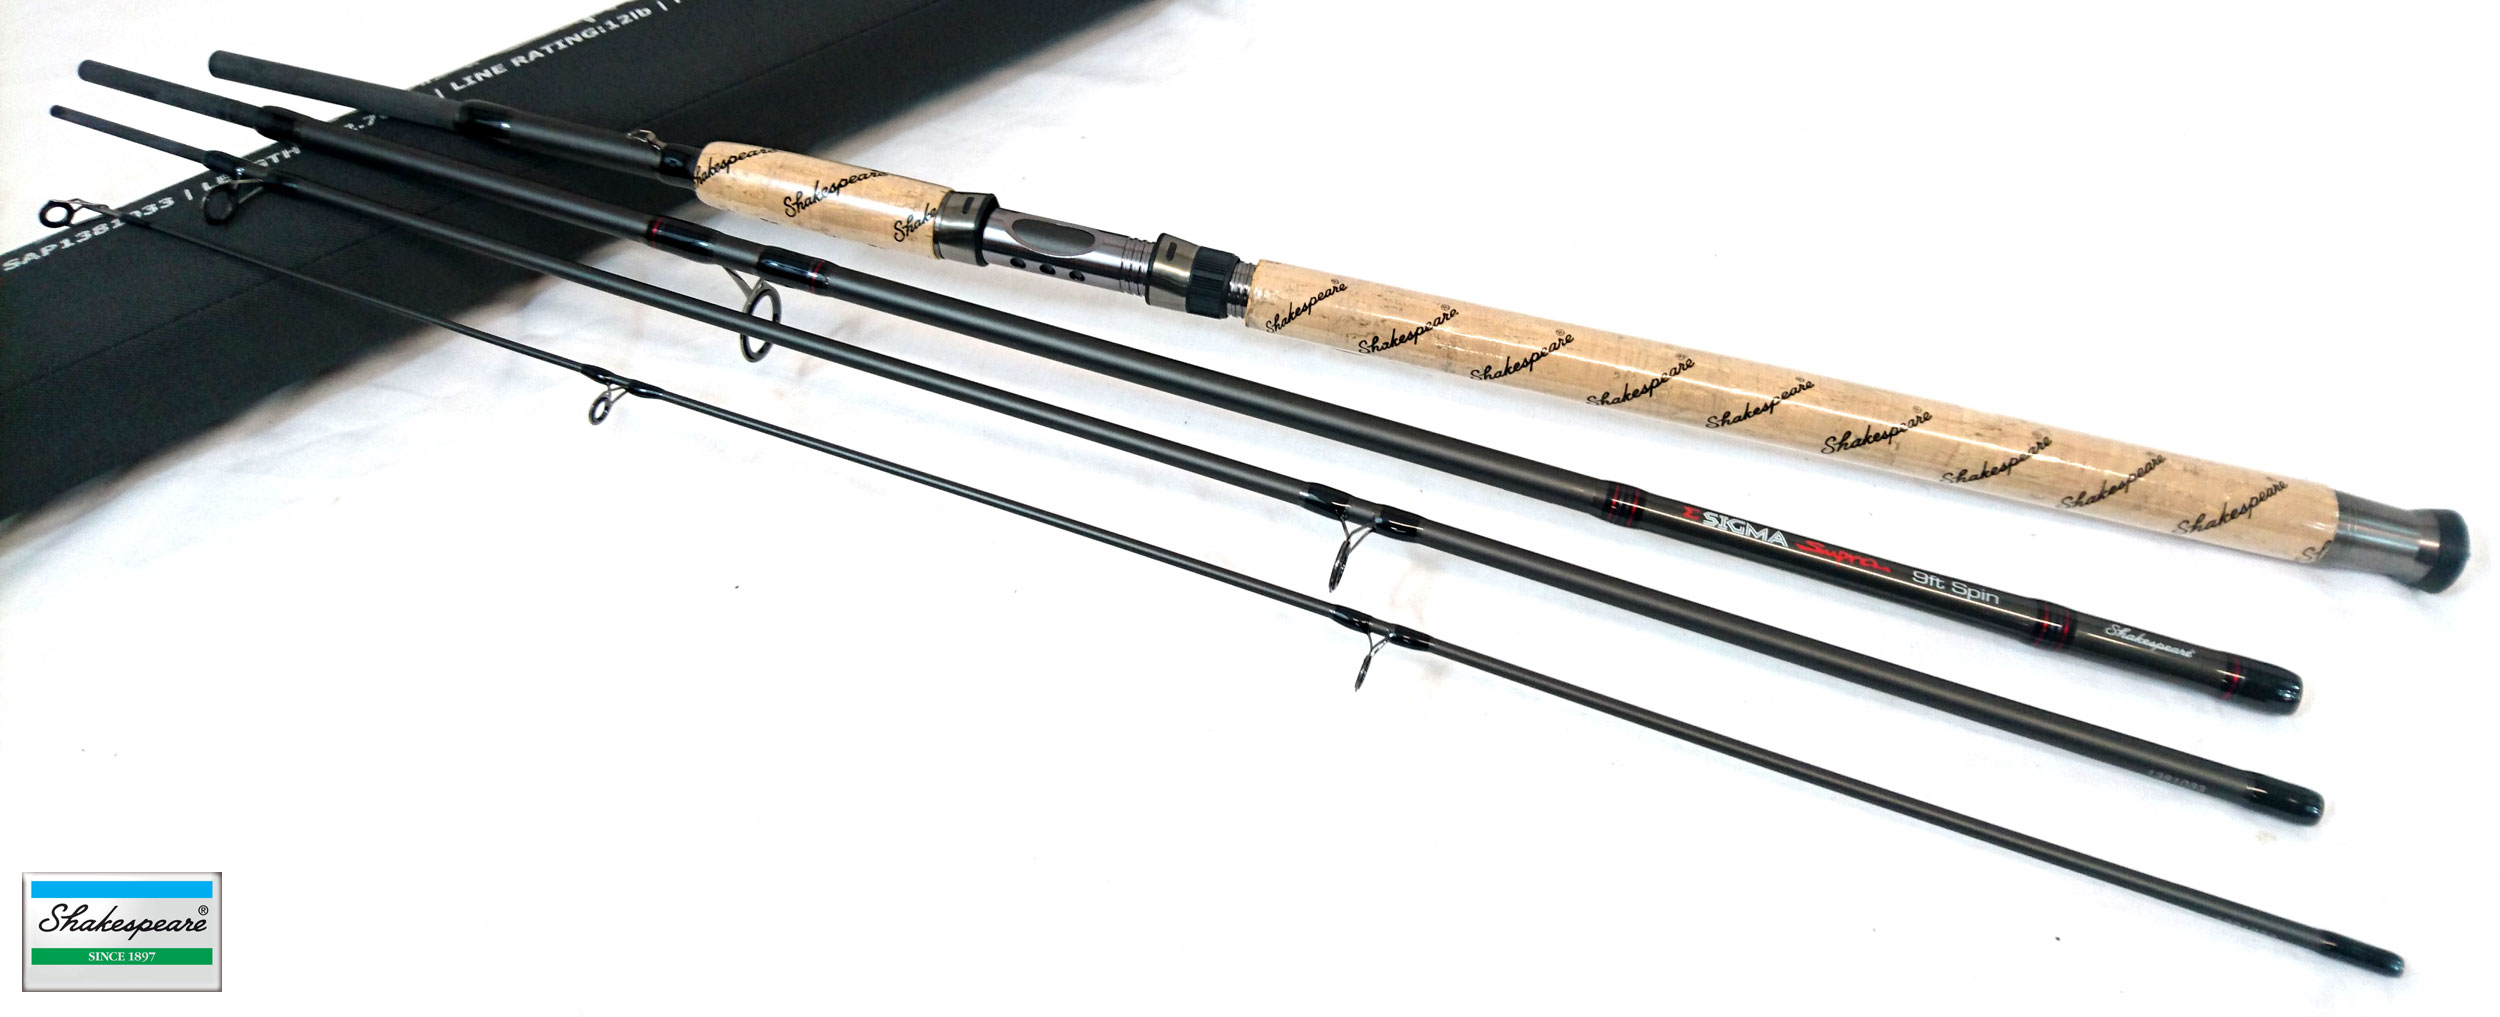 e930294dd900 Sentinel New Shakespeare Sigma Supra Travel Spinning Rod 7ft - 11ft with  Cordura Tube